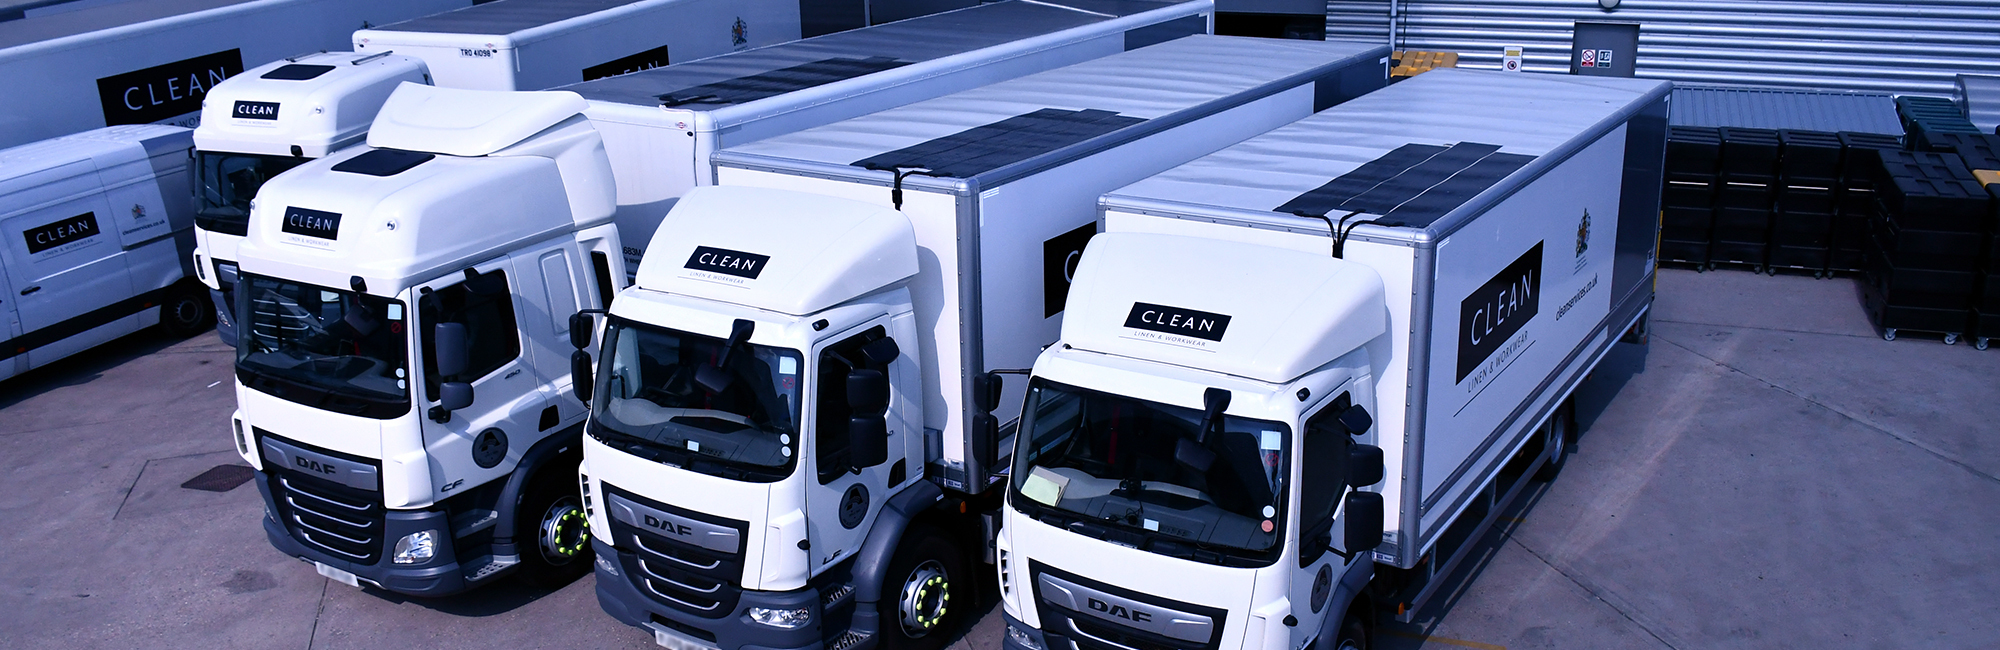 CLEAN reduces vehicle emissions using innovative solar technology - News - CLEAN Services